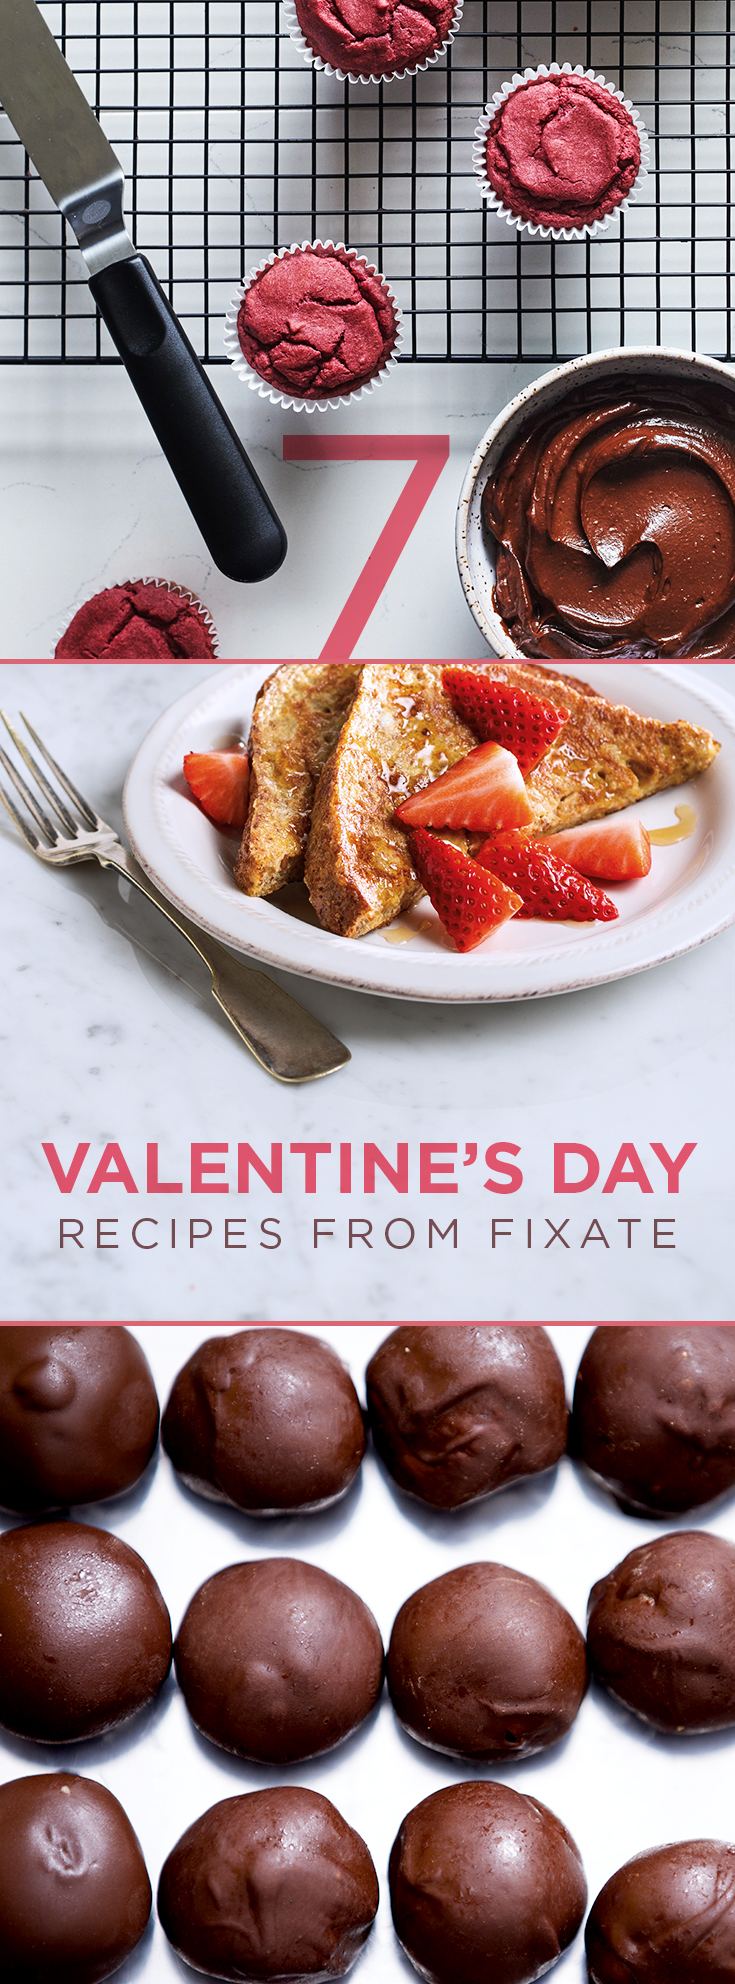 Healthy Valentine's Day Recipes from FIXATE cooking show with Autumn Calabrese.